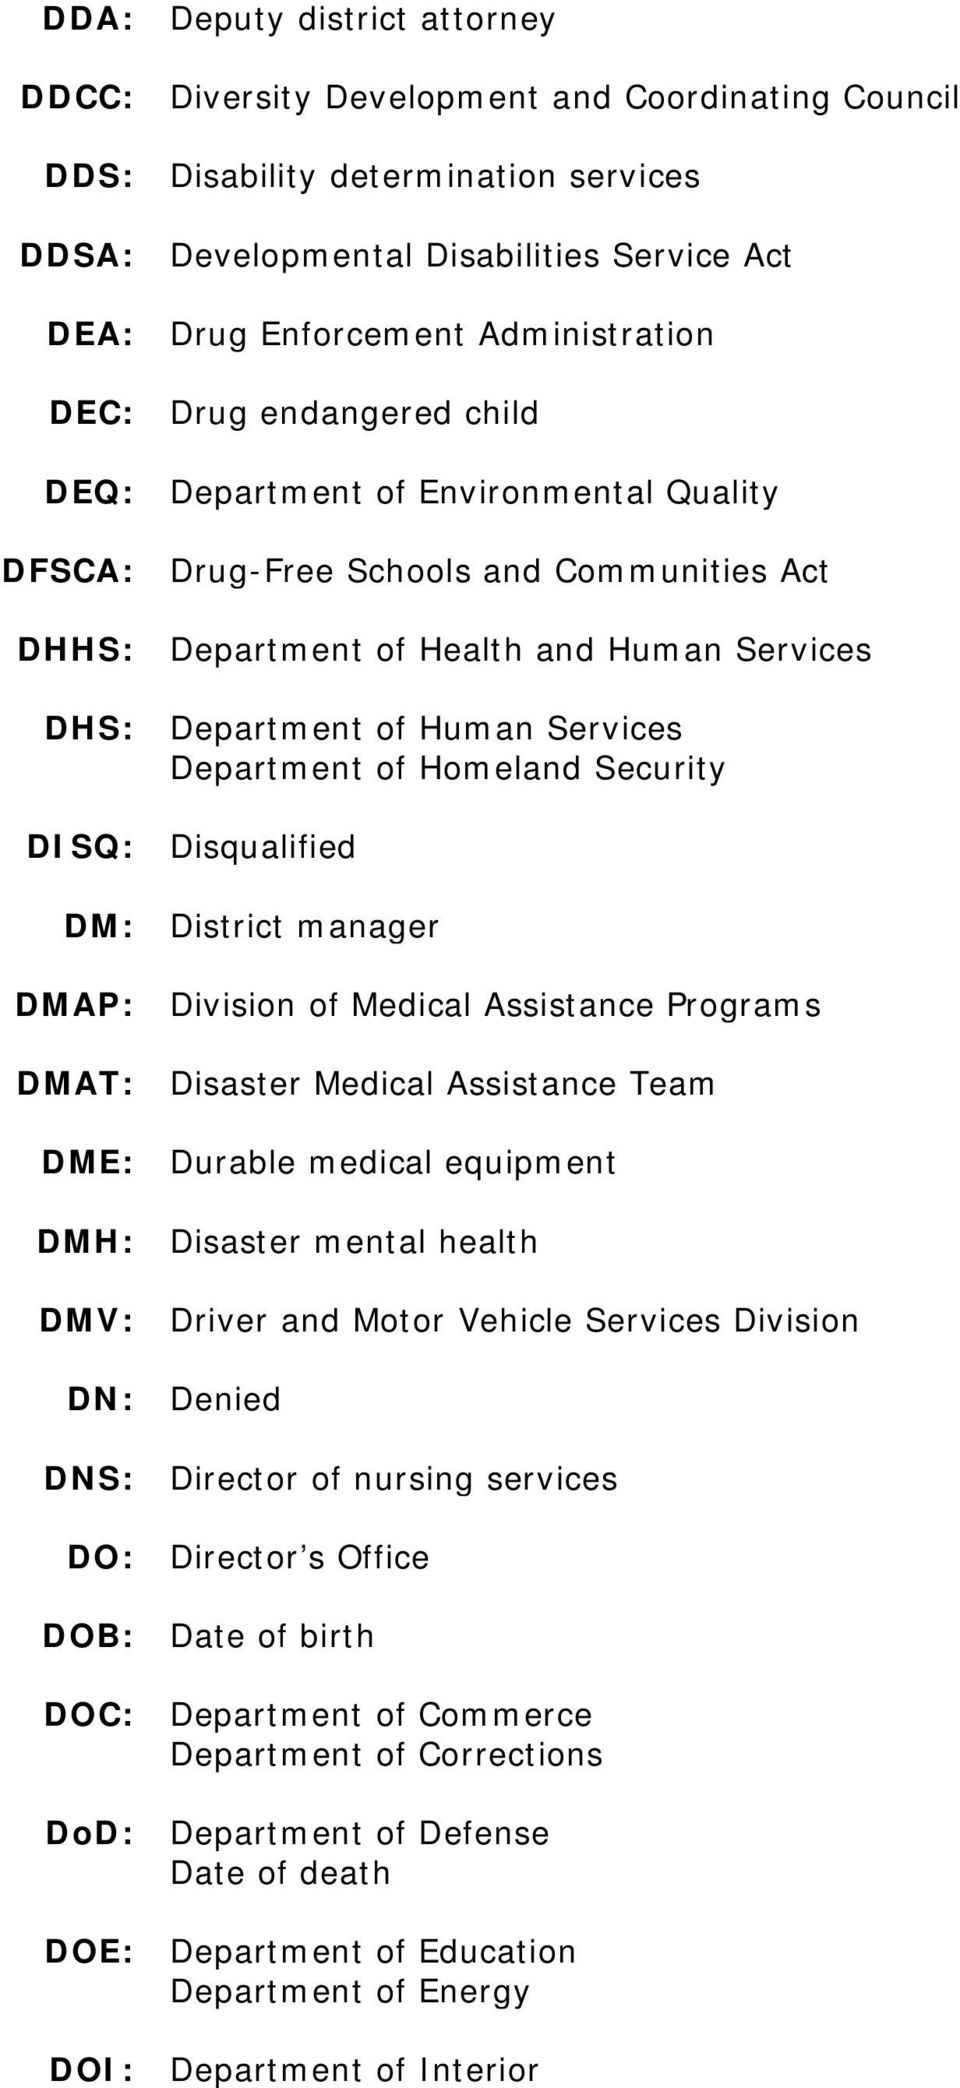 Services Department of Homeland Security DISQ: Disqualified DM: District manager DMAP: Division of Medical Assistance Programs DMAT: Disaster Medical Assistance Team DME: Durable medical equipment